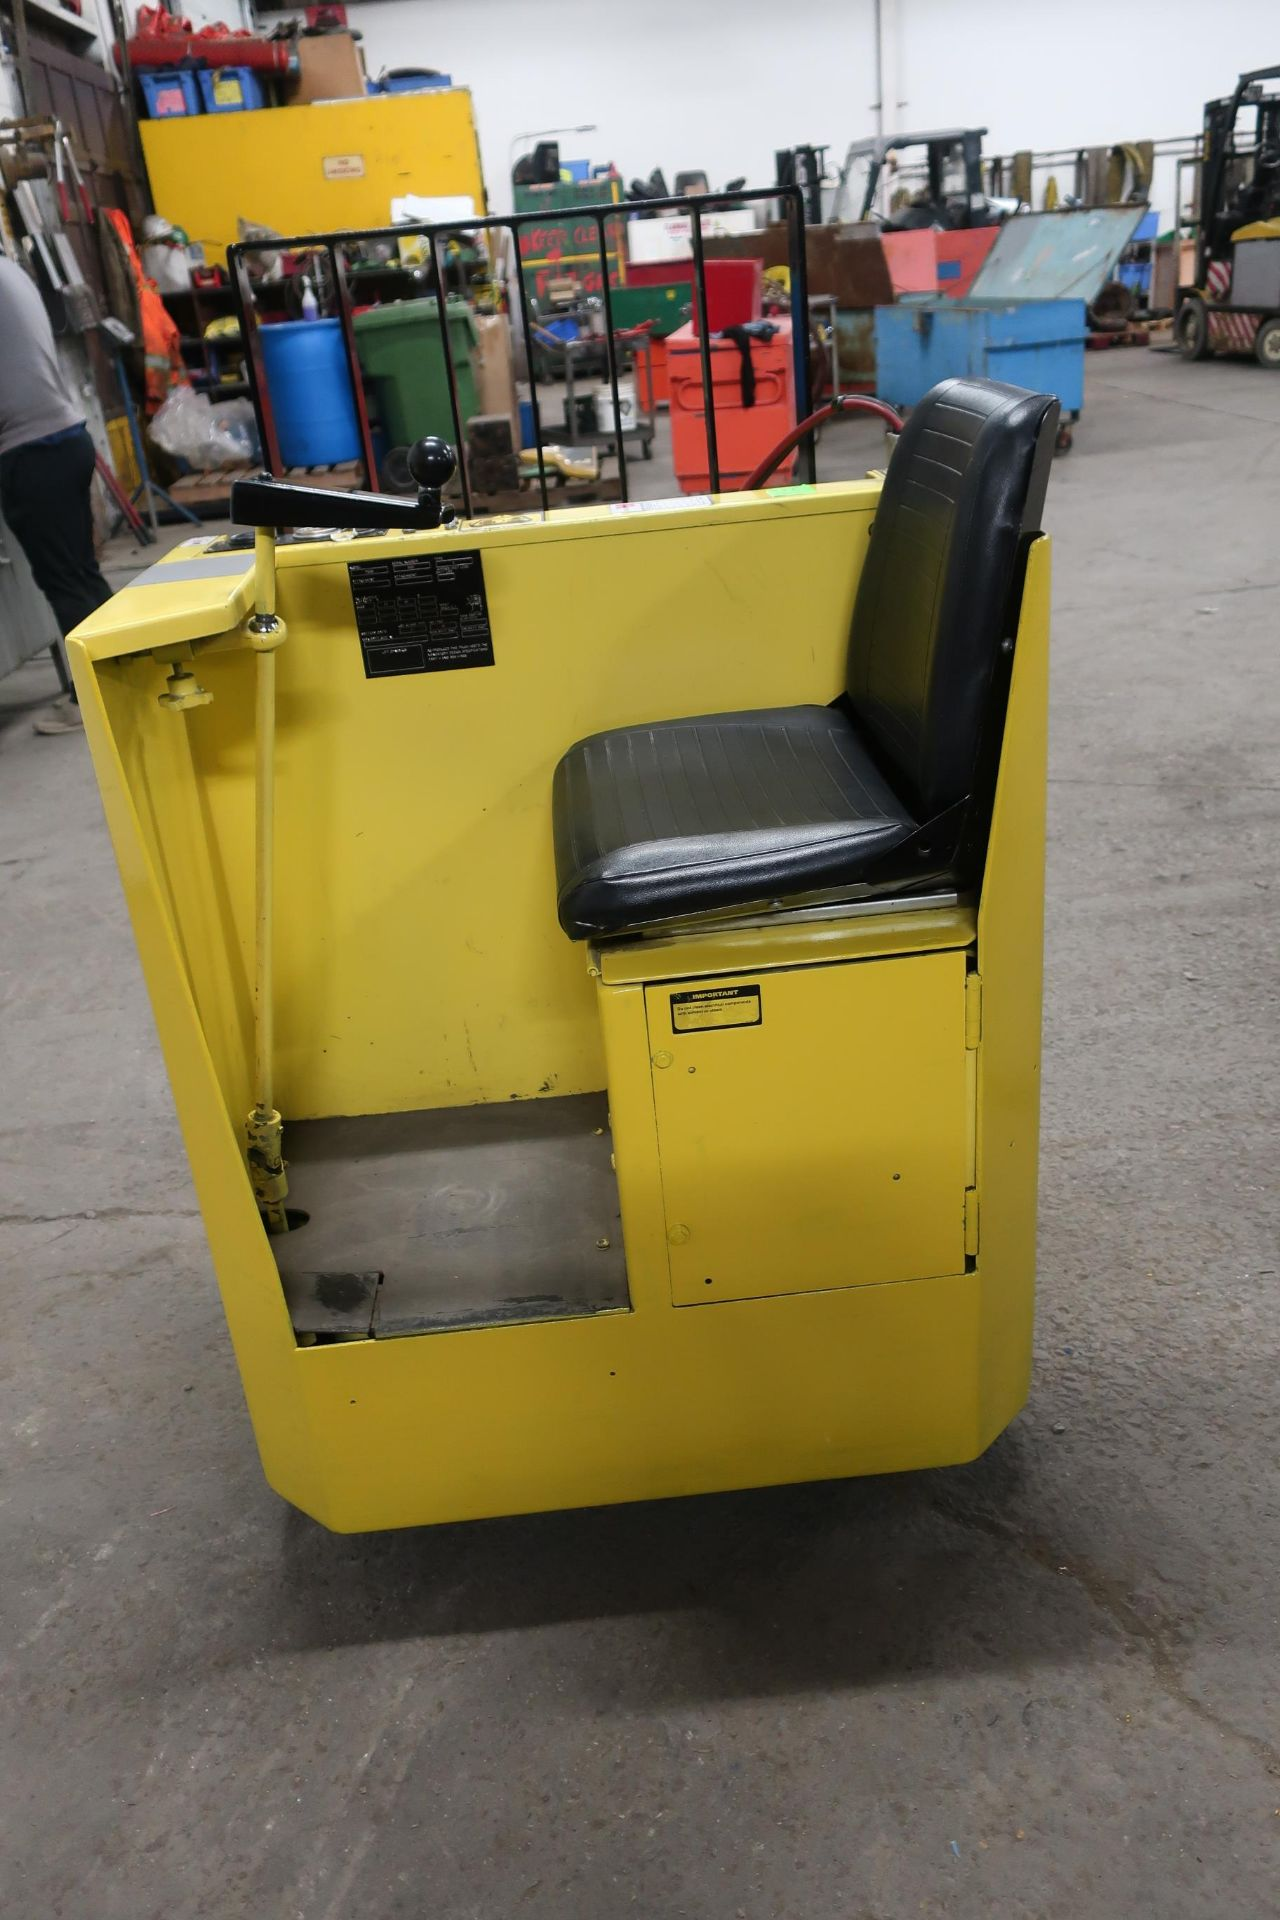 Dynamics Lift Sit down Electric Ride on Powered Pallet Cart Lift 6000lbs capacity safety into 2021 - Image 2 of 3